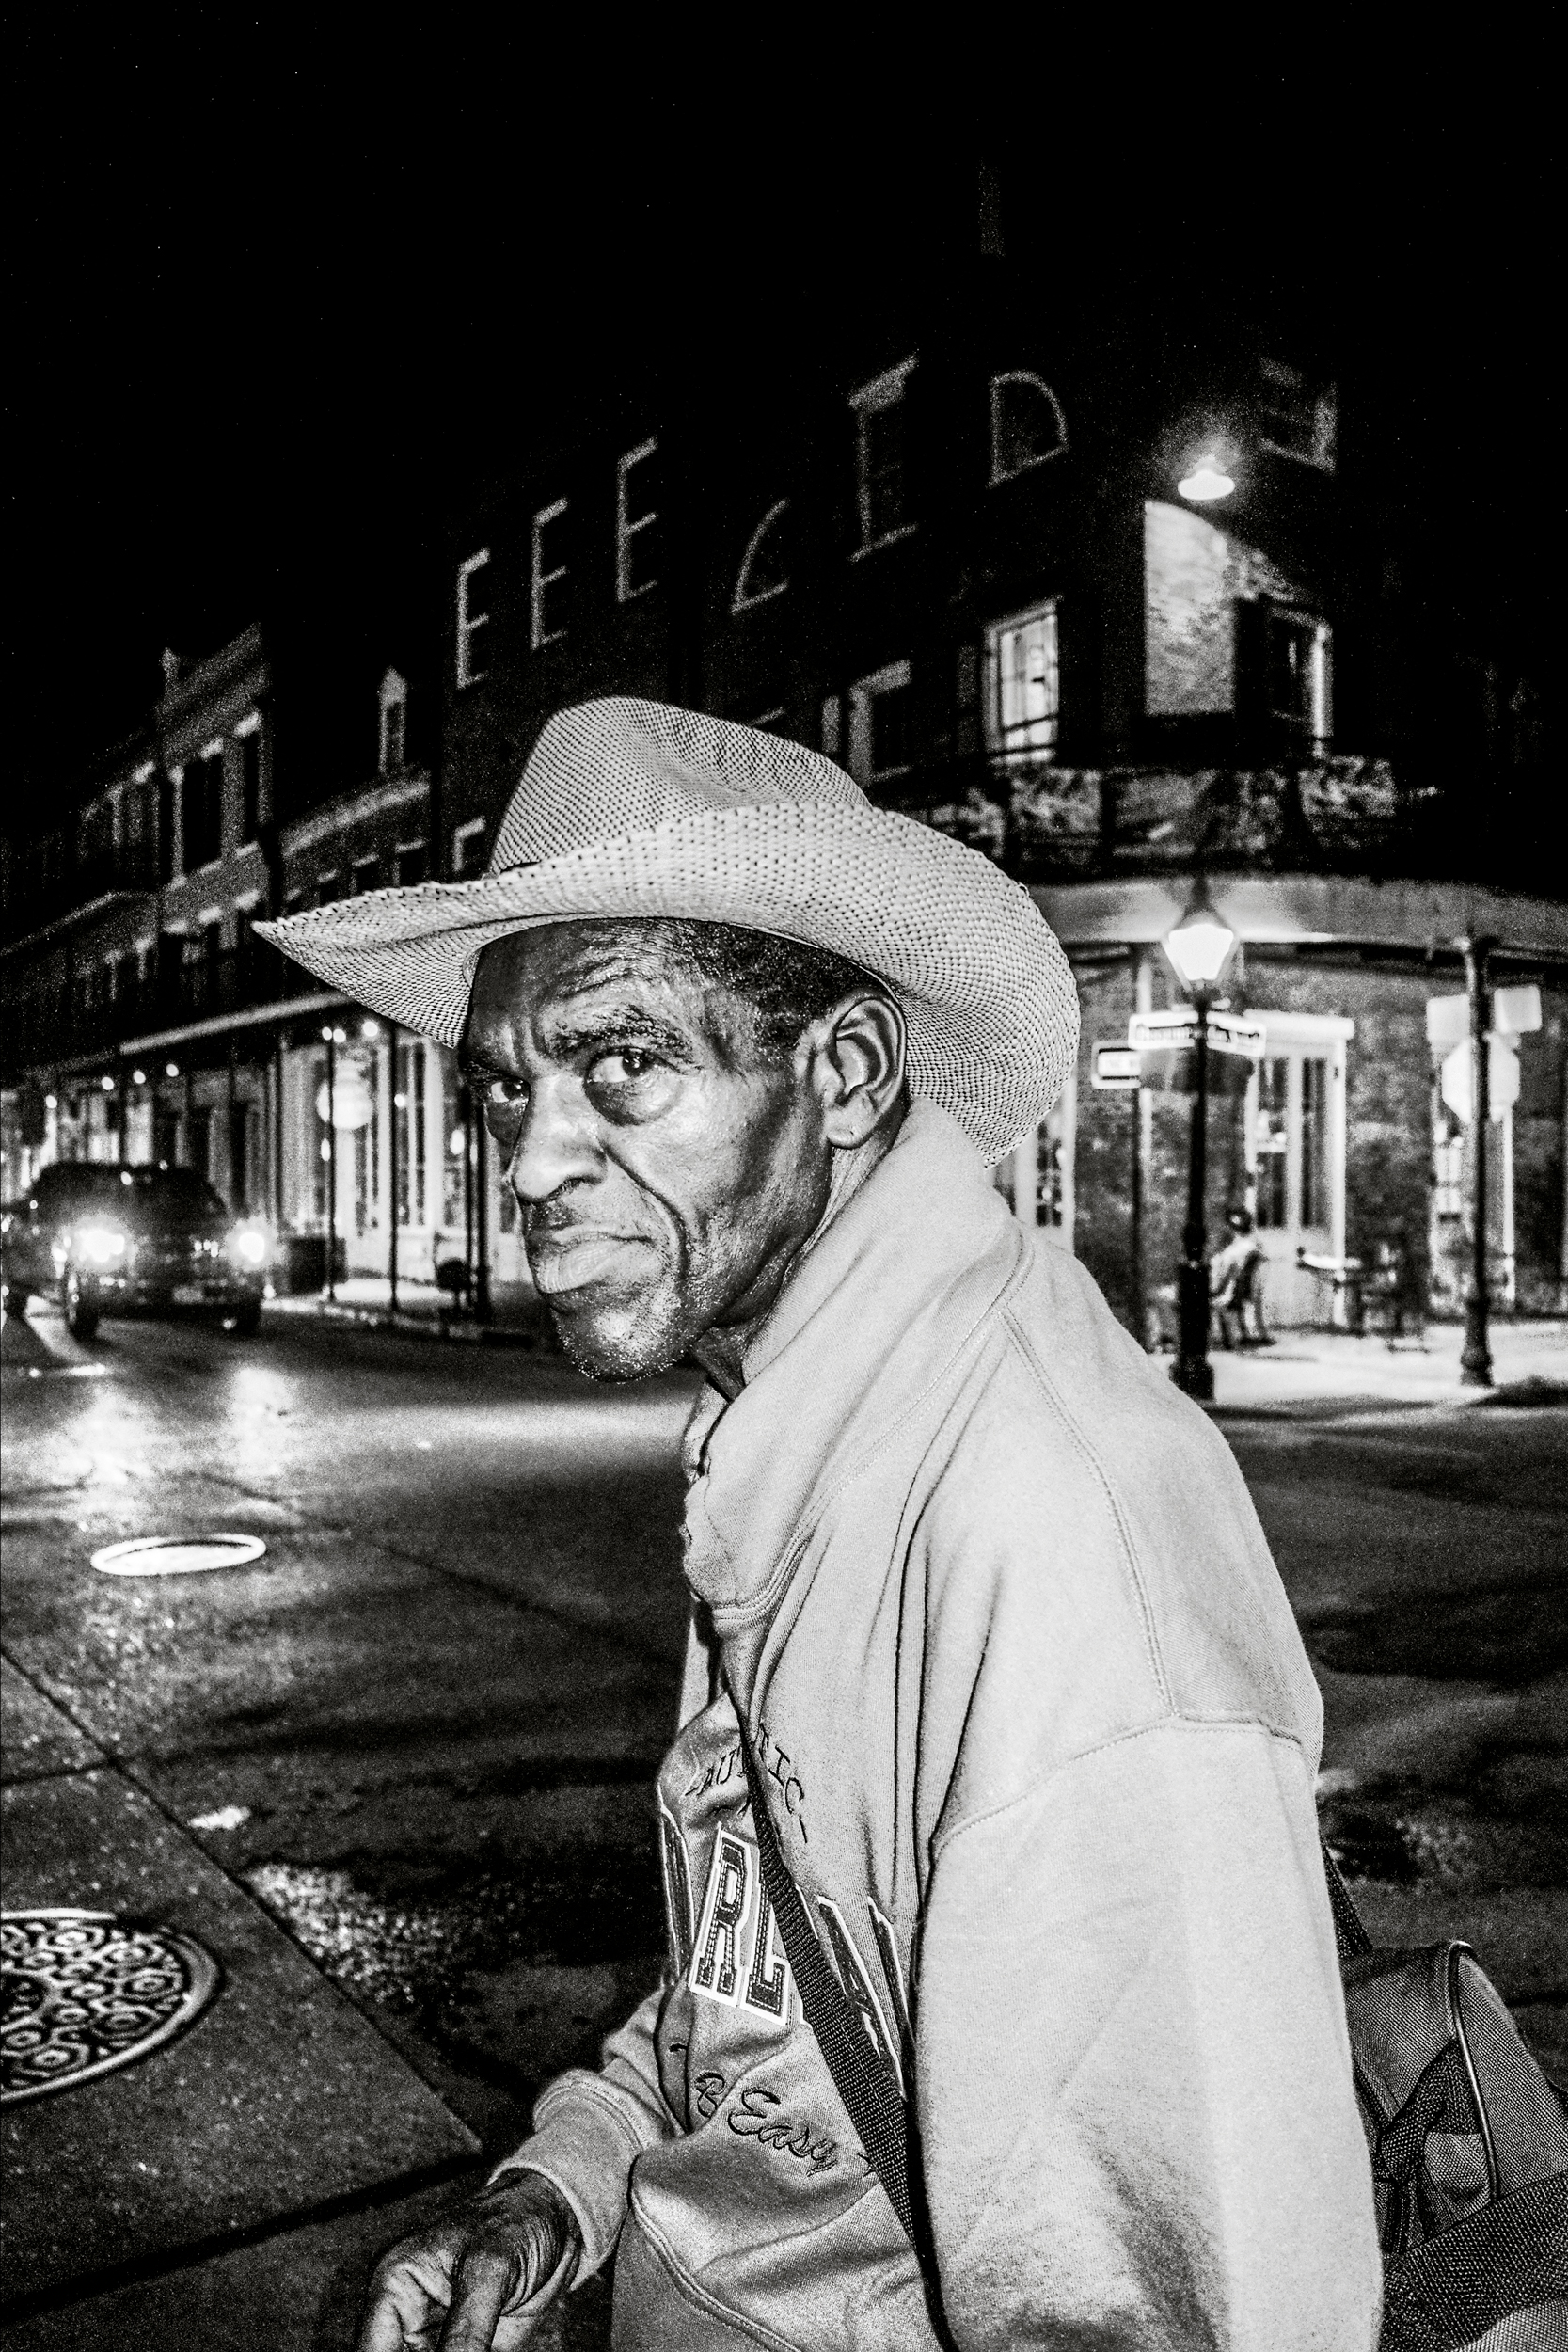 Decatur Street, New Orleans 2018 ©Meg Hewitt